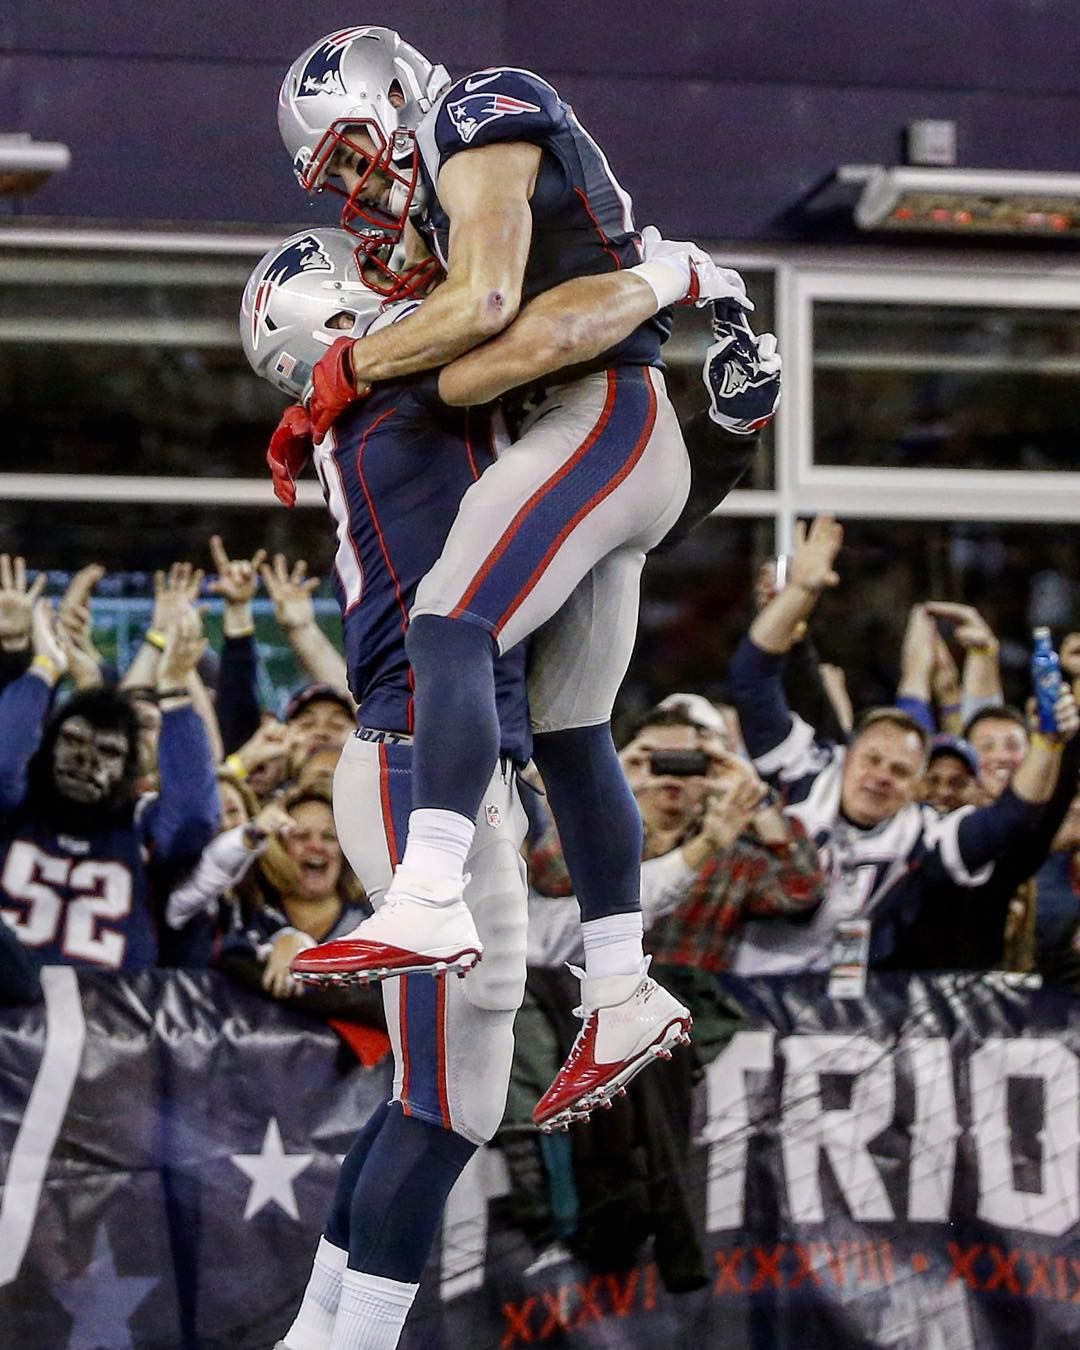 New England Patriots On Instagram Two Catches On The Play For Rob Gronkowski First A 47 New England Patriots New England Patriots Merchandise Julian Edelman